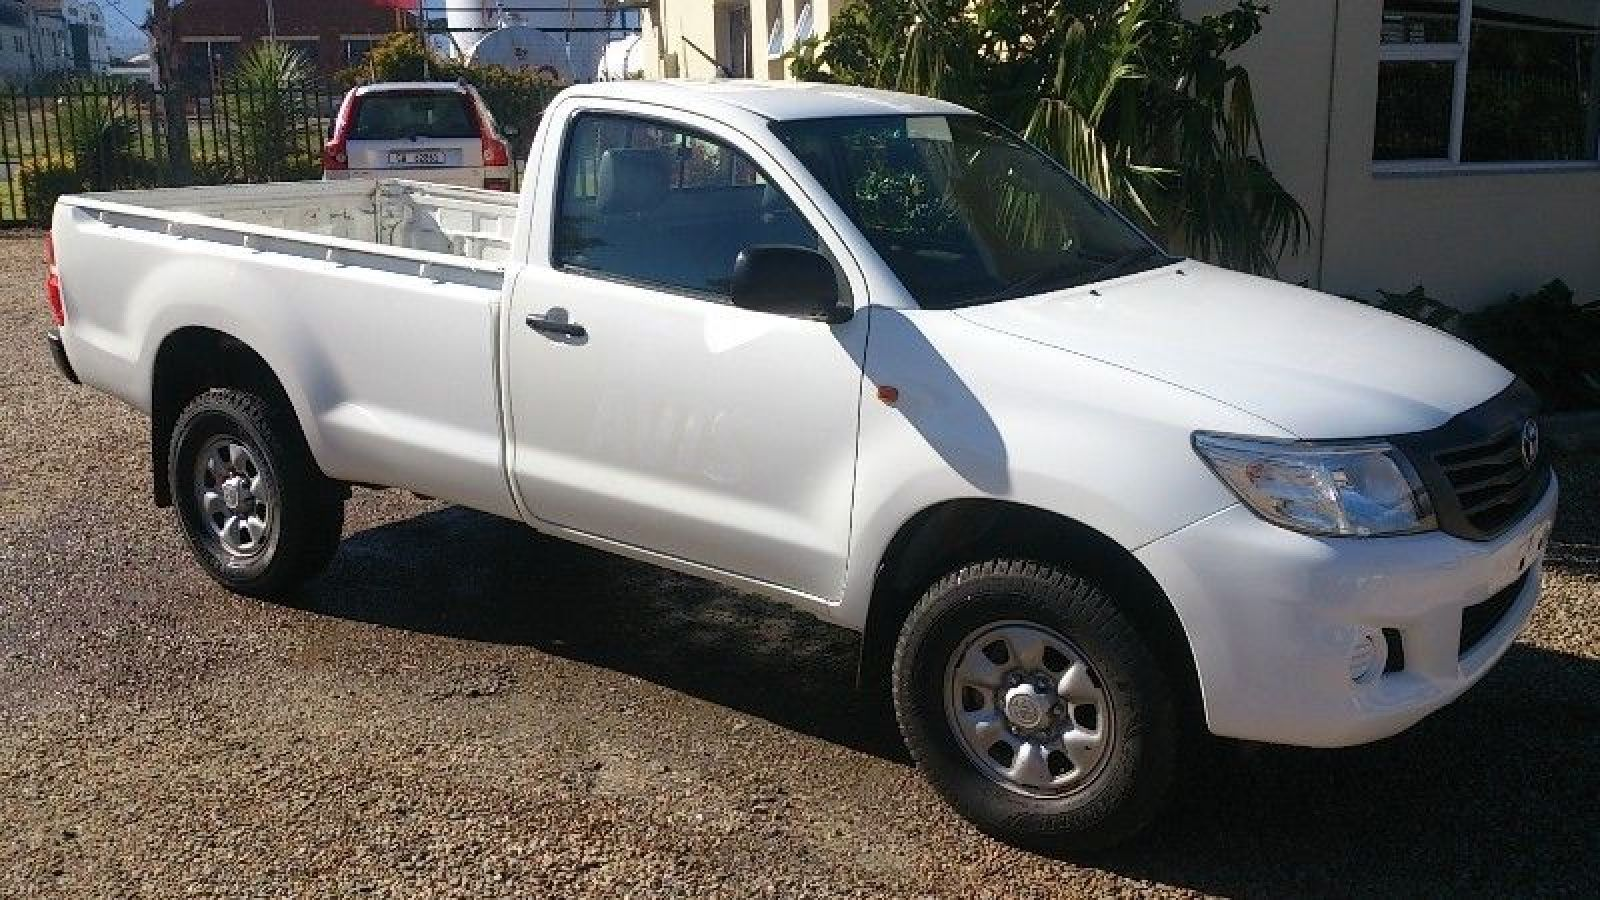 HILUX HILUX 2 5 D-4D S P/U S/C Specifications